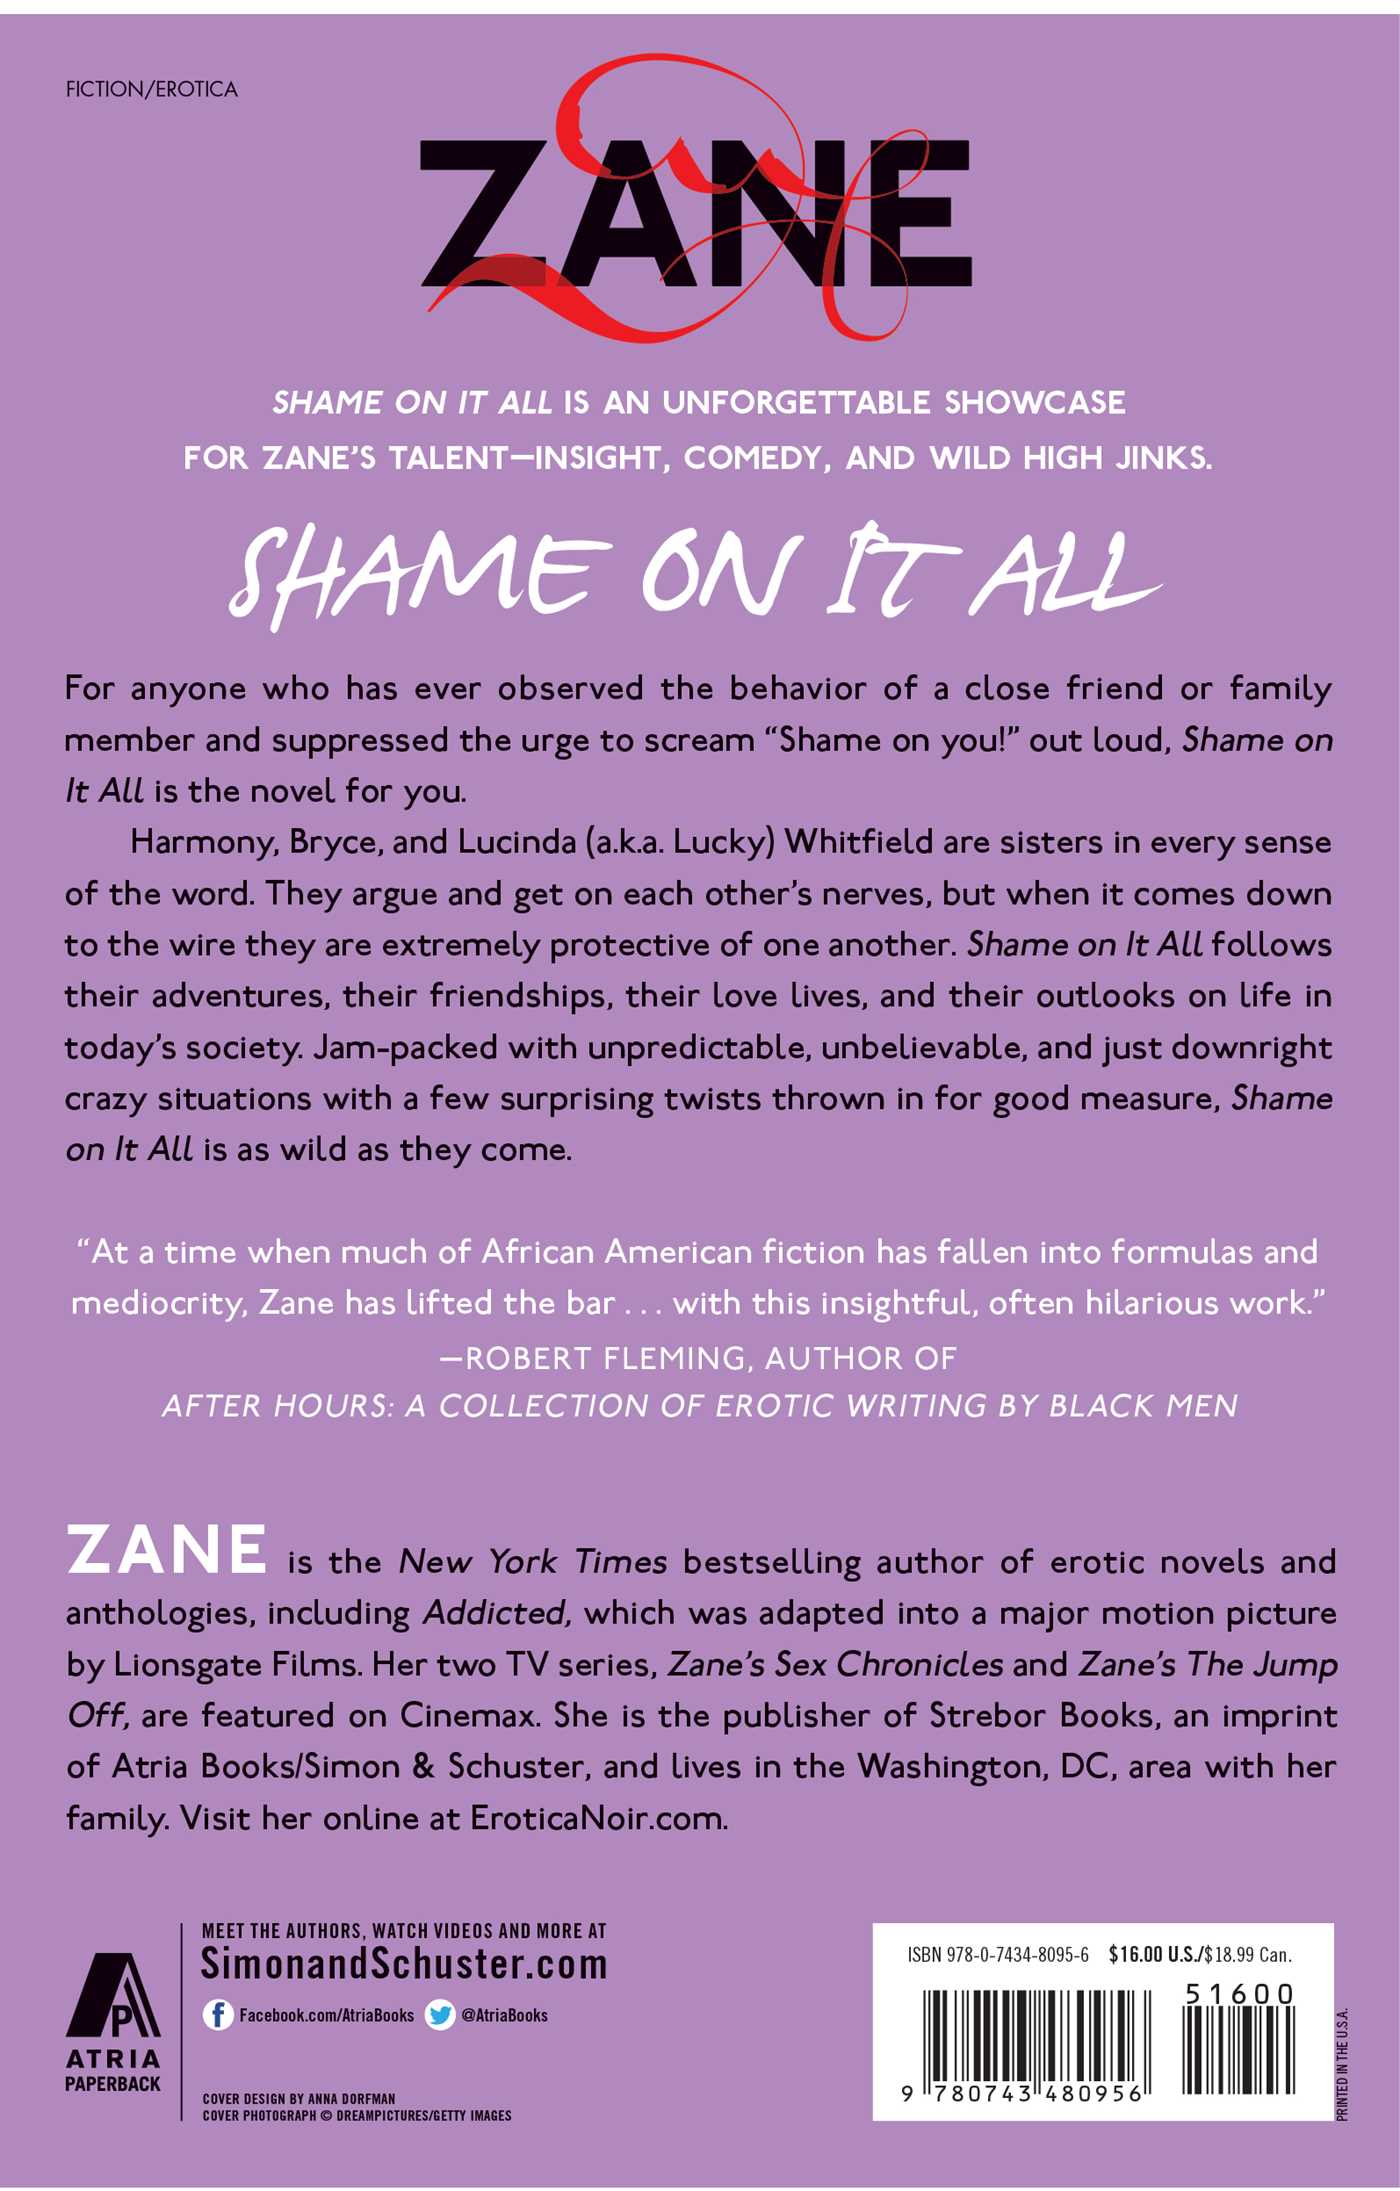 Zanes-shame-on-it-all-9780743480956_hr-back